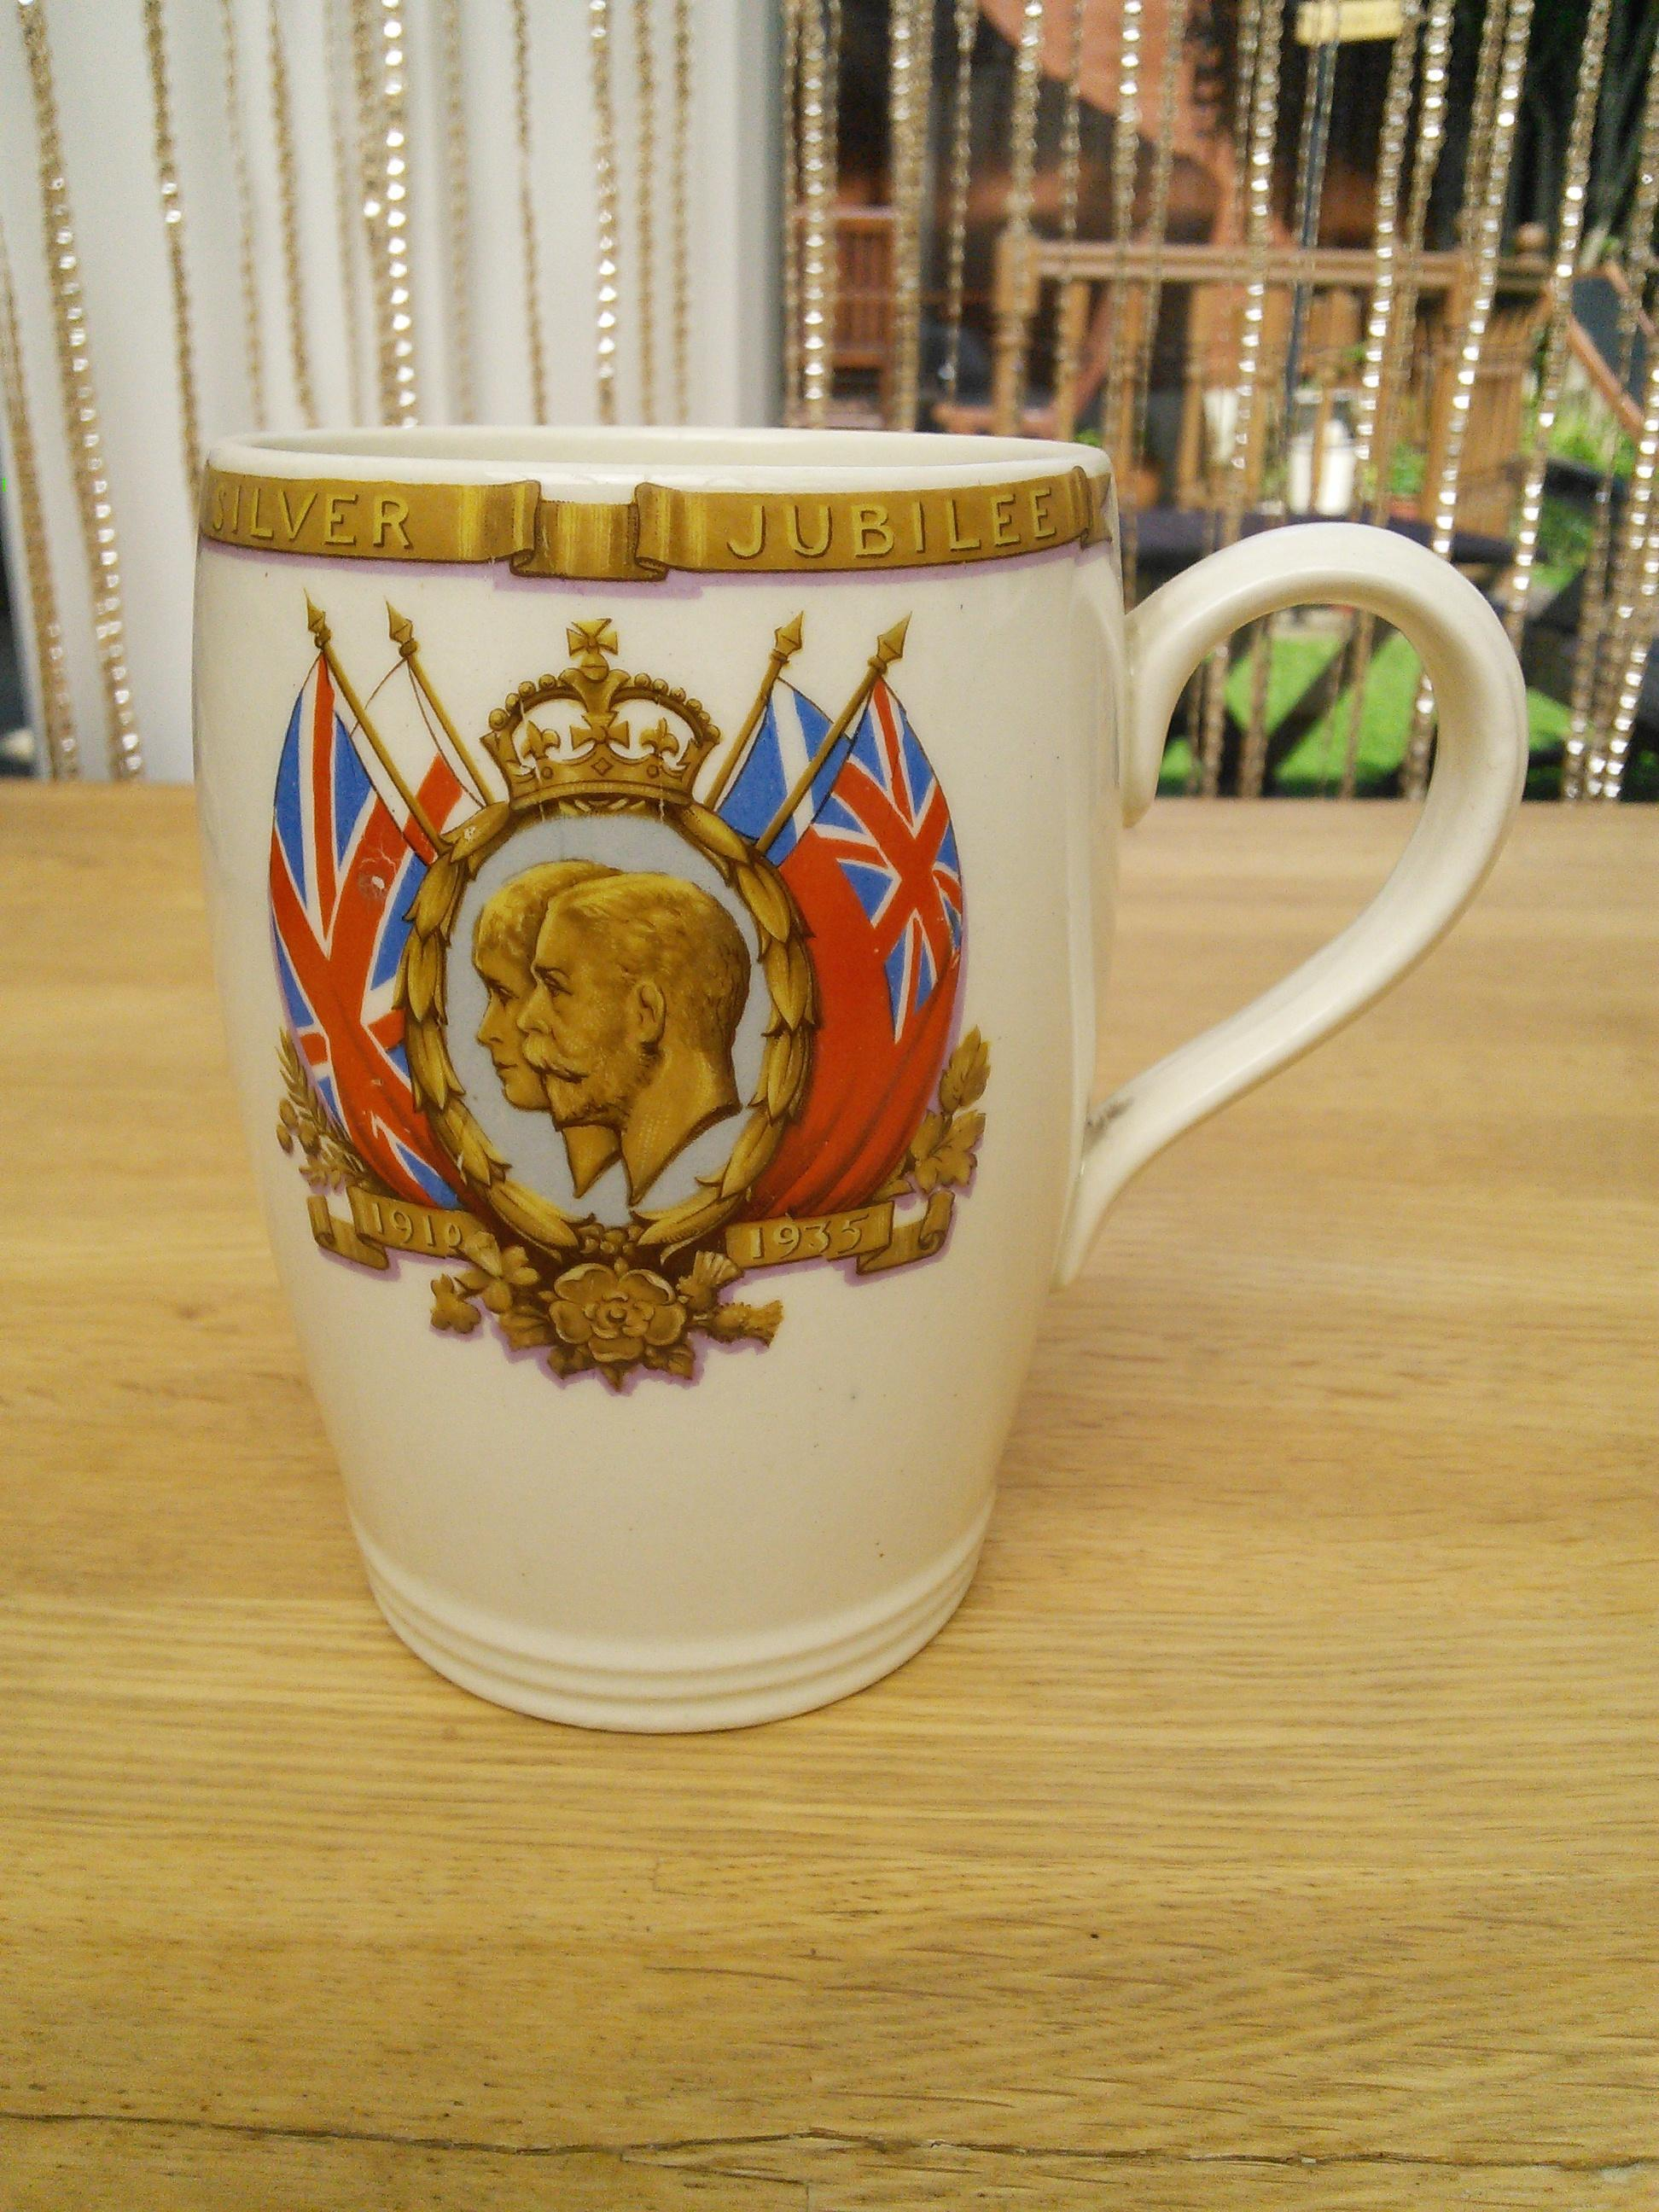 George v and Queen Mary silver jubilee mug.